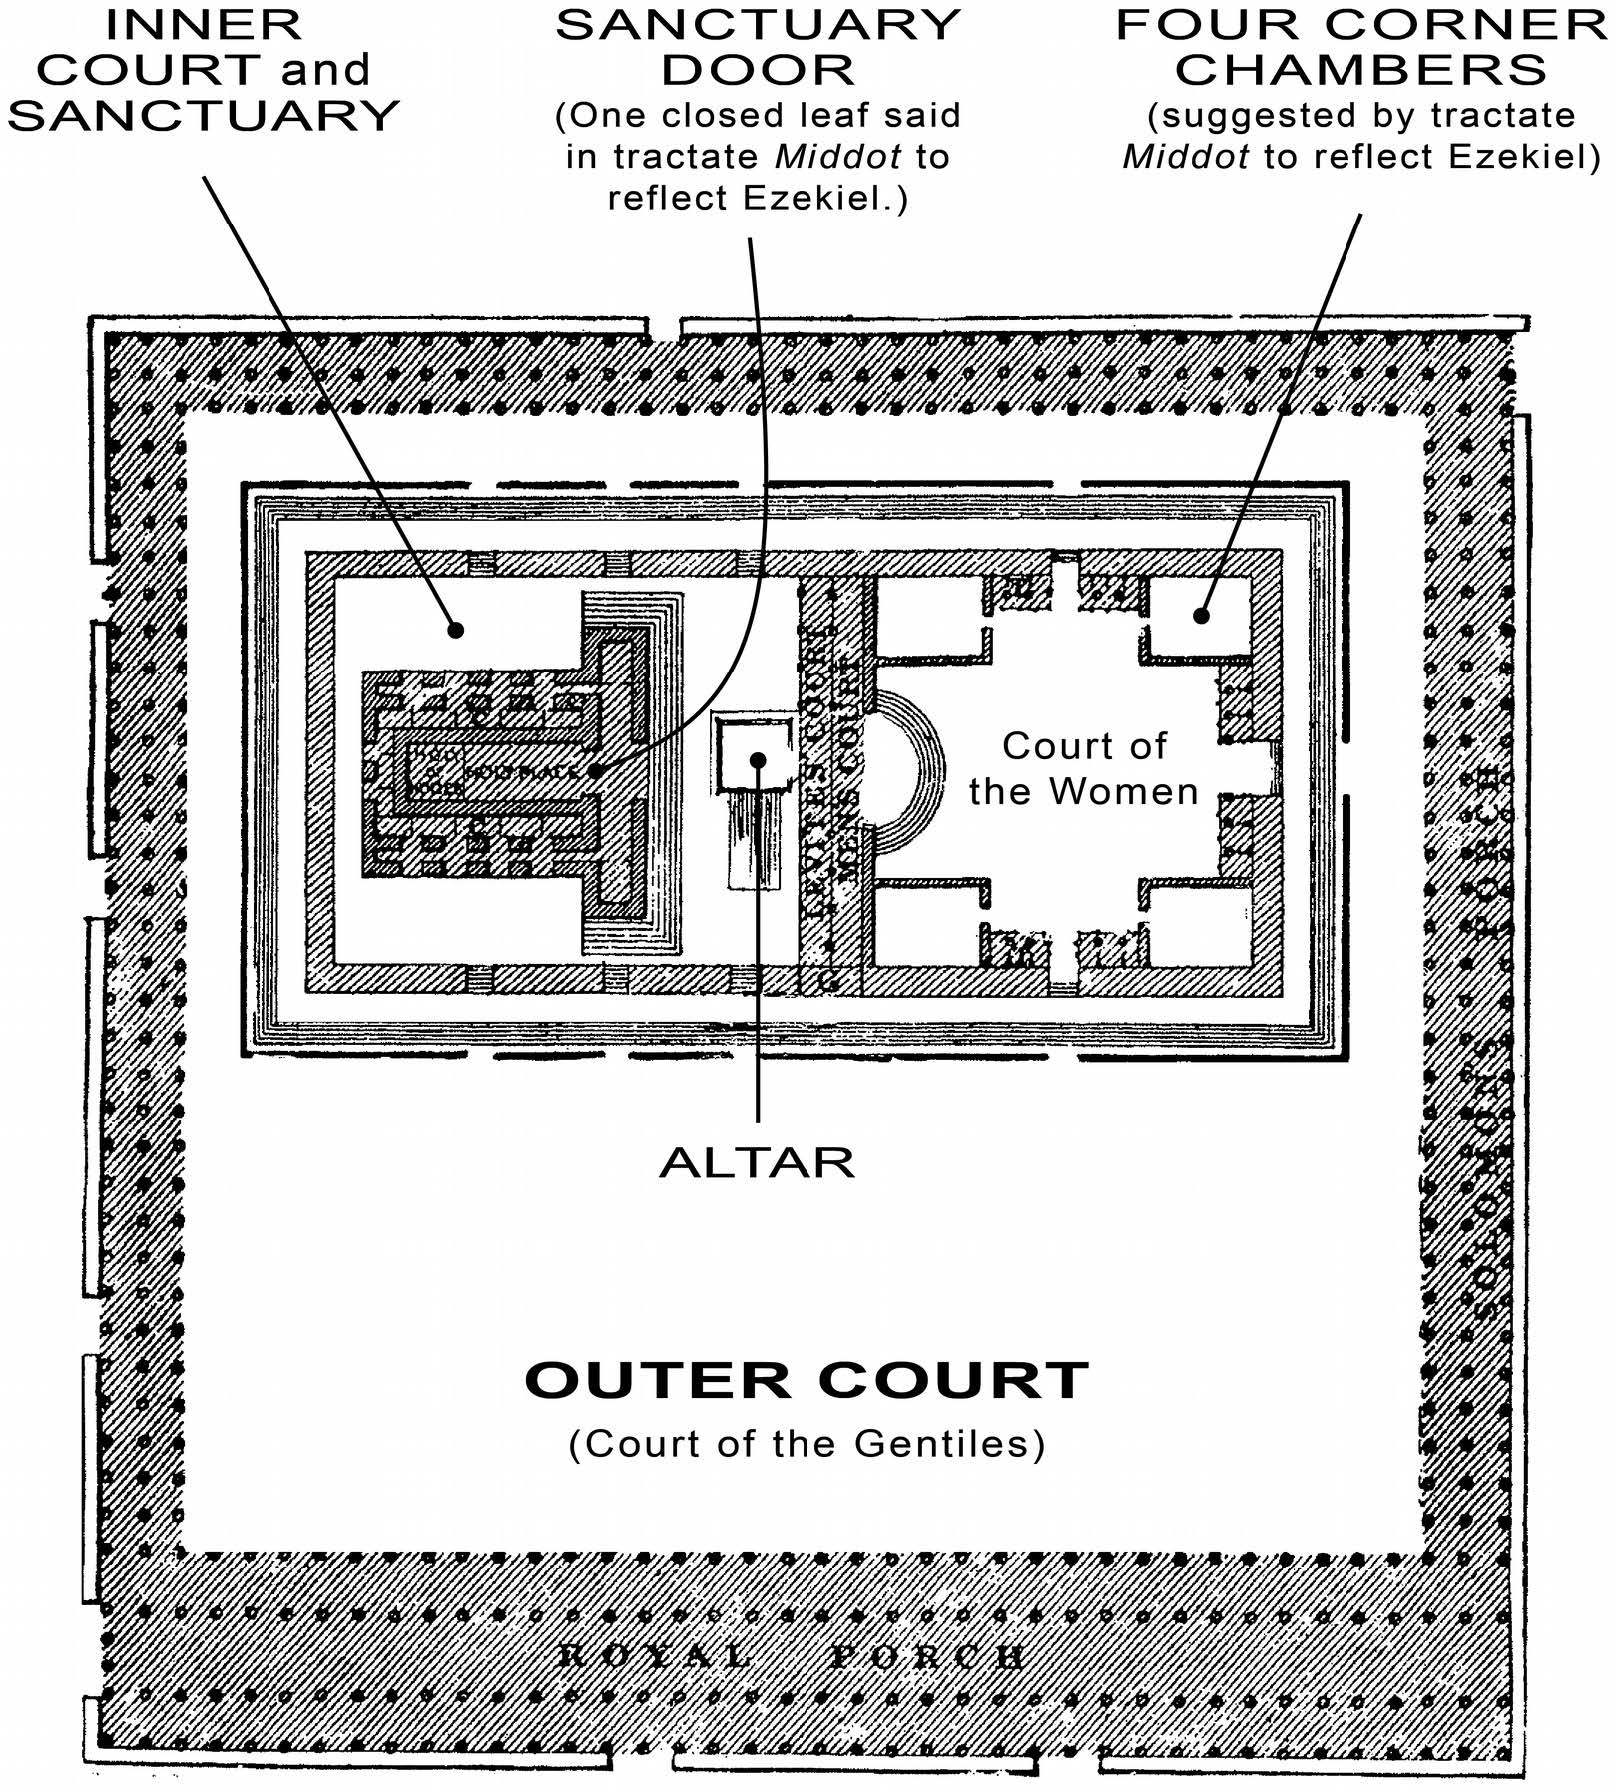 FIGURE 2:   Diagram of Herod's Temple   Diagram of the Second (Herod's) Temple as described in the tractate  Middot  of the Mishnah, showing two features claimed to have been influenced by Ezekiel. (Compare to Fig. 1.)  Temple base plan reproduced from  The Temple  (1874) by Alfred Edersheim, Photolithoprinted by Eerdmans, 1994 (no Copyright notice.)